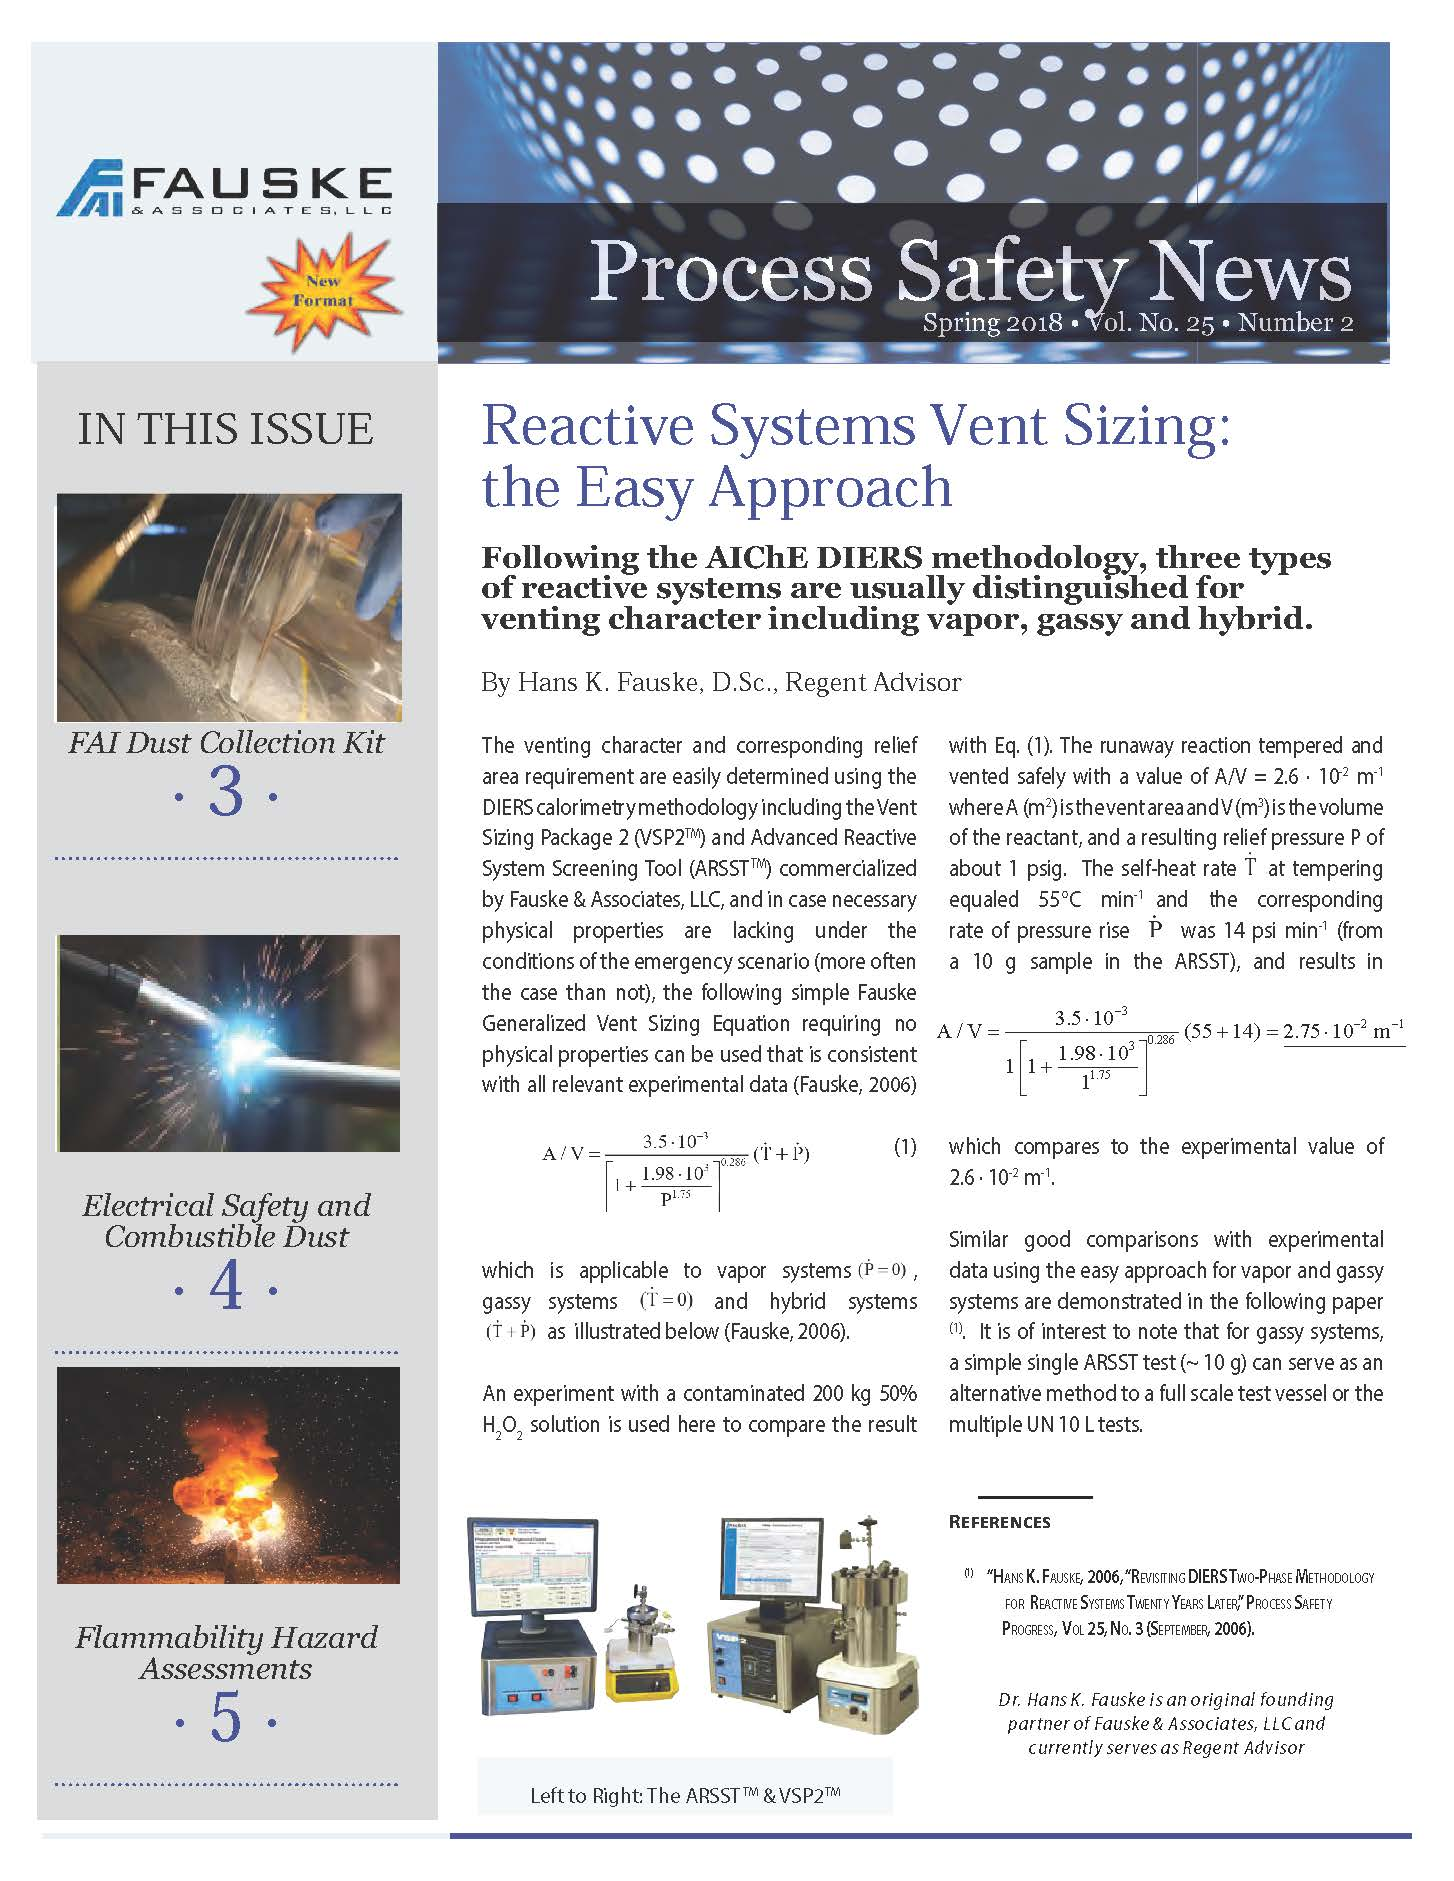 Spring 2018 Process Safety Newsletter